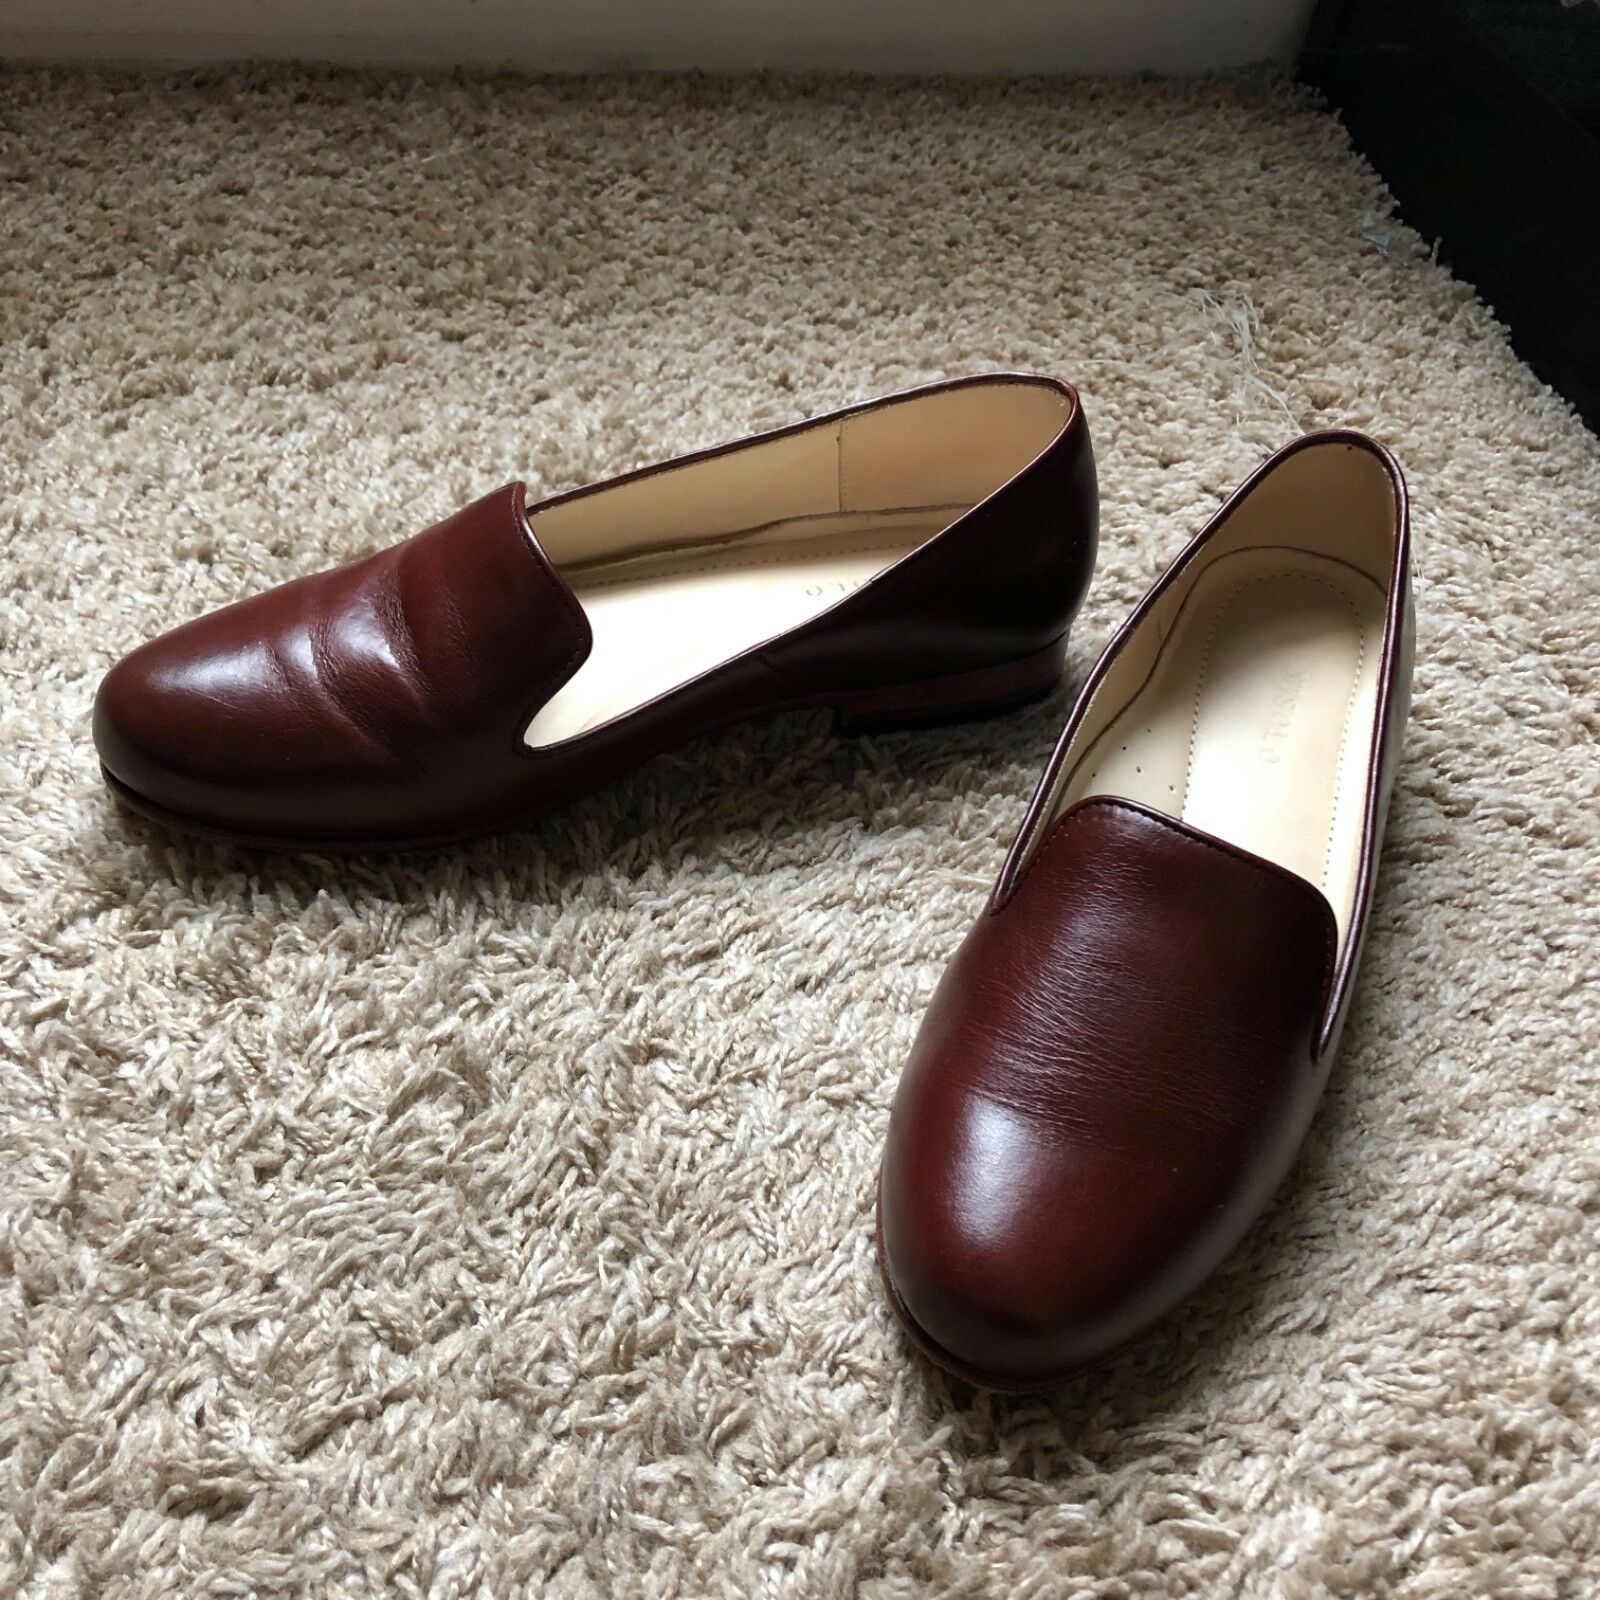 Nisolo Womens Classic Smoking shoes Size Size Size 8.5 Brown Leather Slip On 4a9066